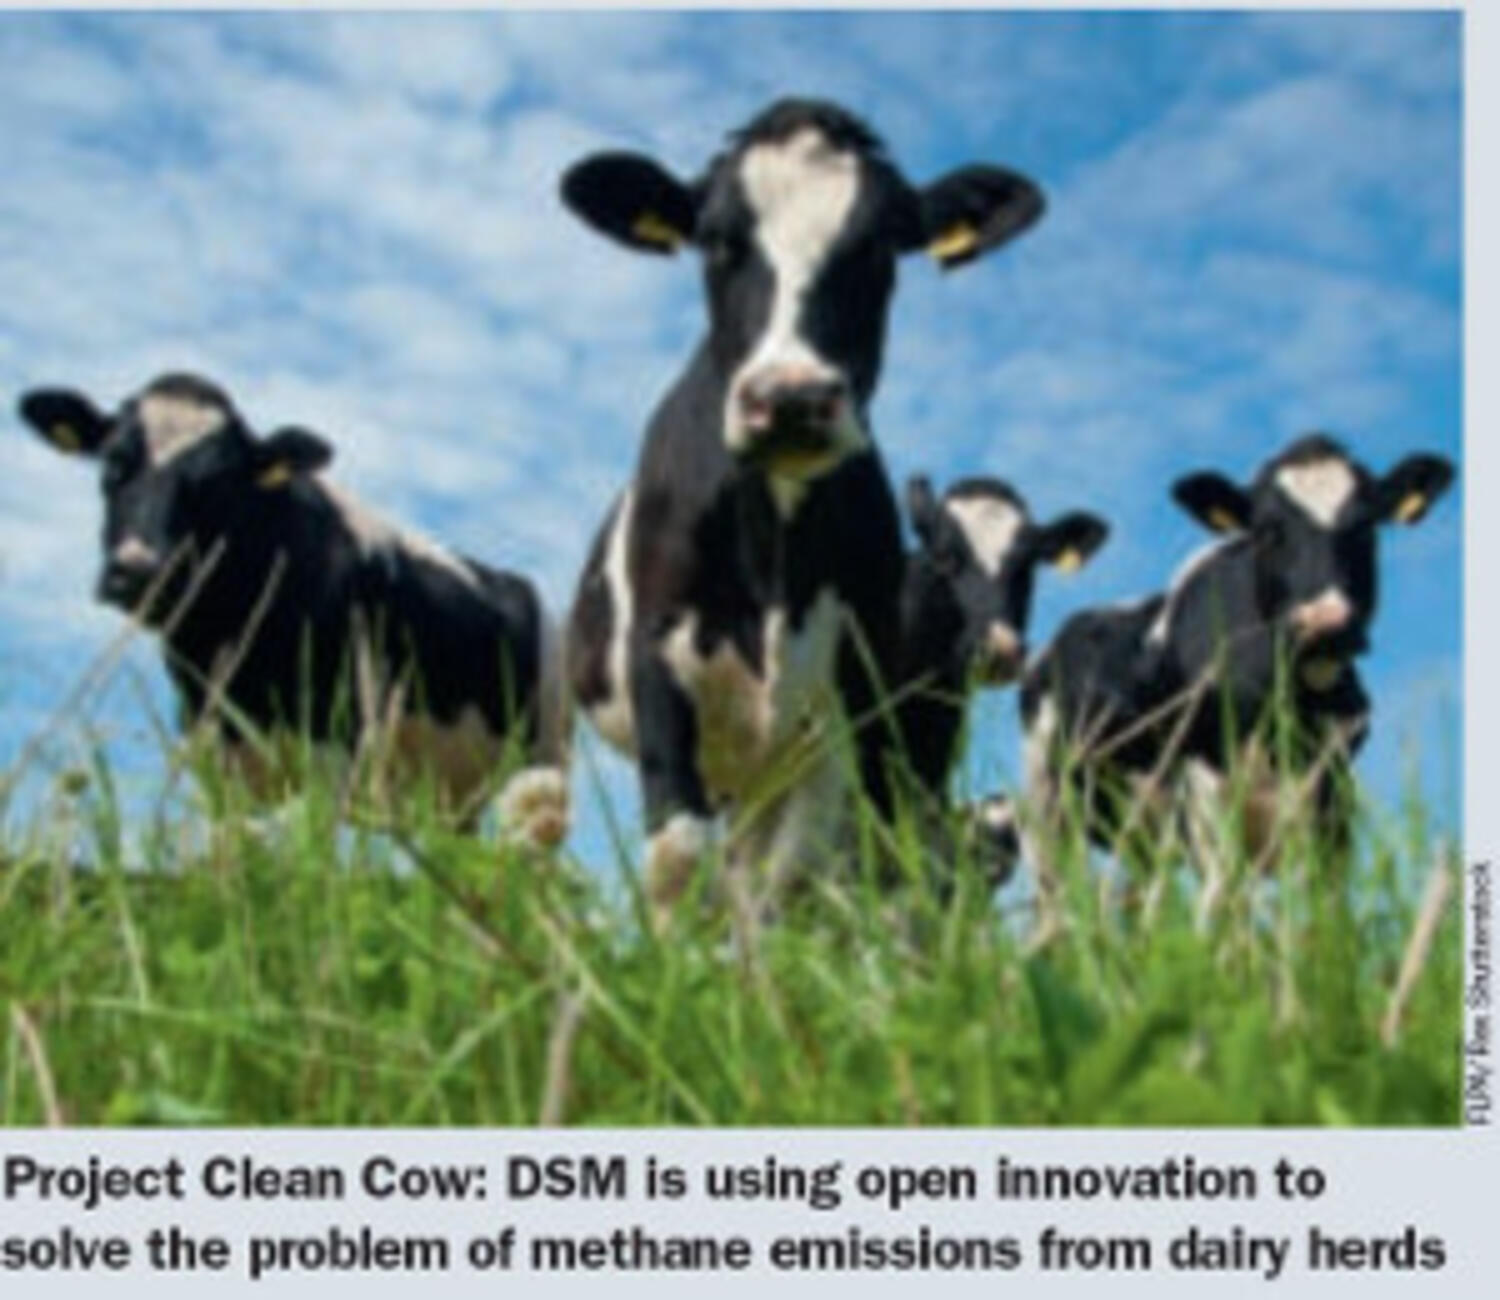 Project Clean Cow